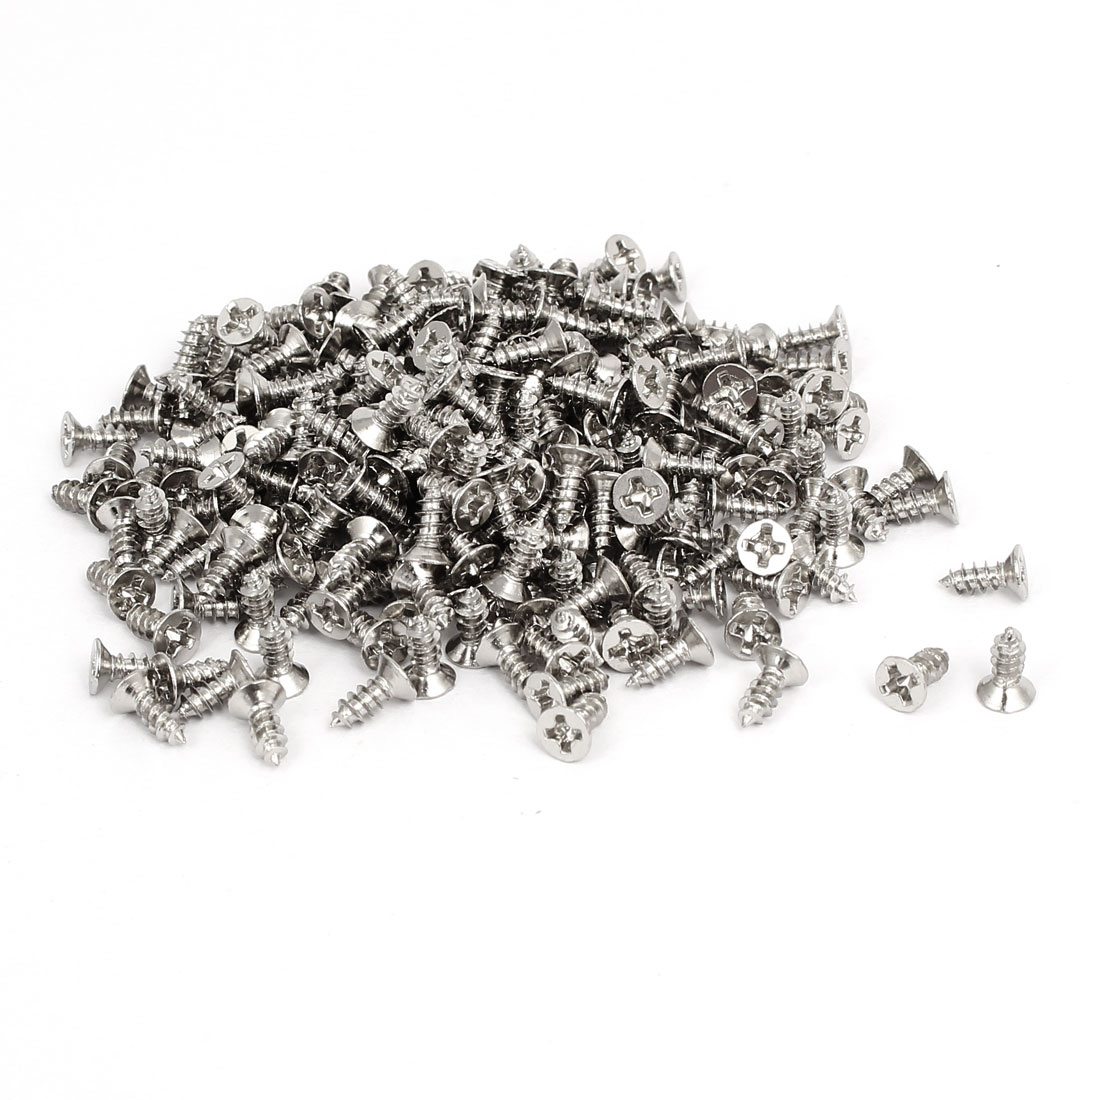 M3 x 8mm Phillips Flat Head Self Tapping Screws Silver Tone 275pcs